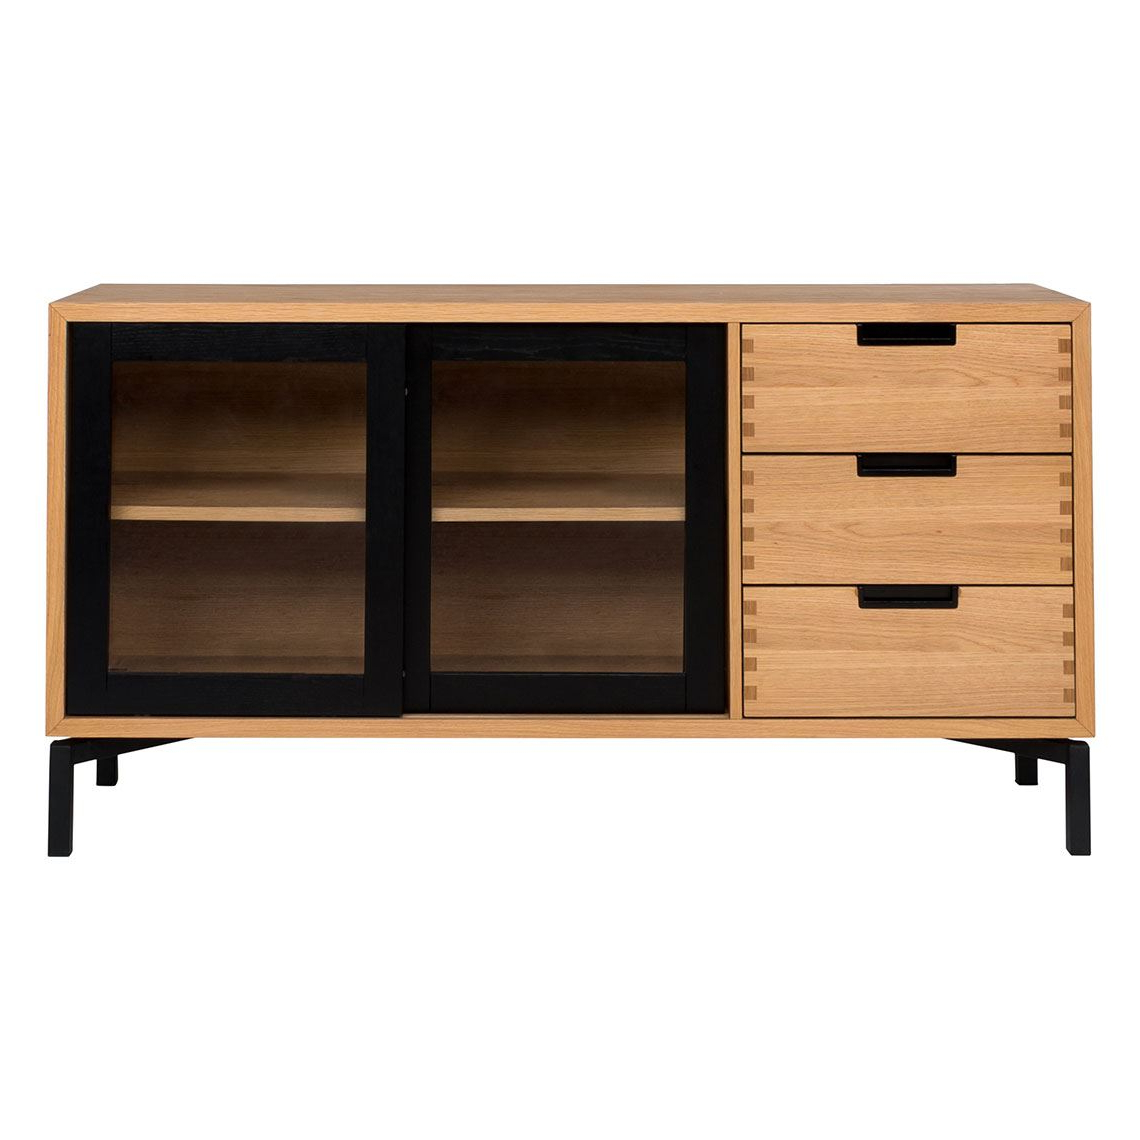 Atelier 2 Door 3 Drawer Buffet, Black & Oak With Industrial Style 3 Drawer Buffets (View 6 of 20)